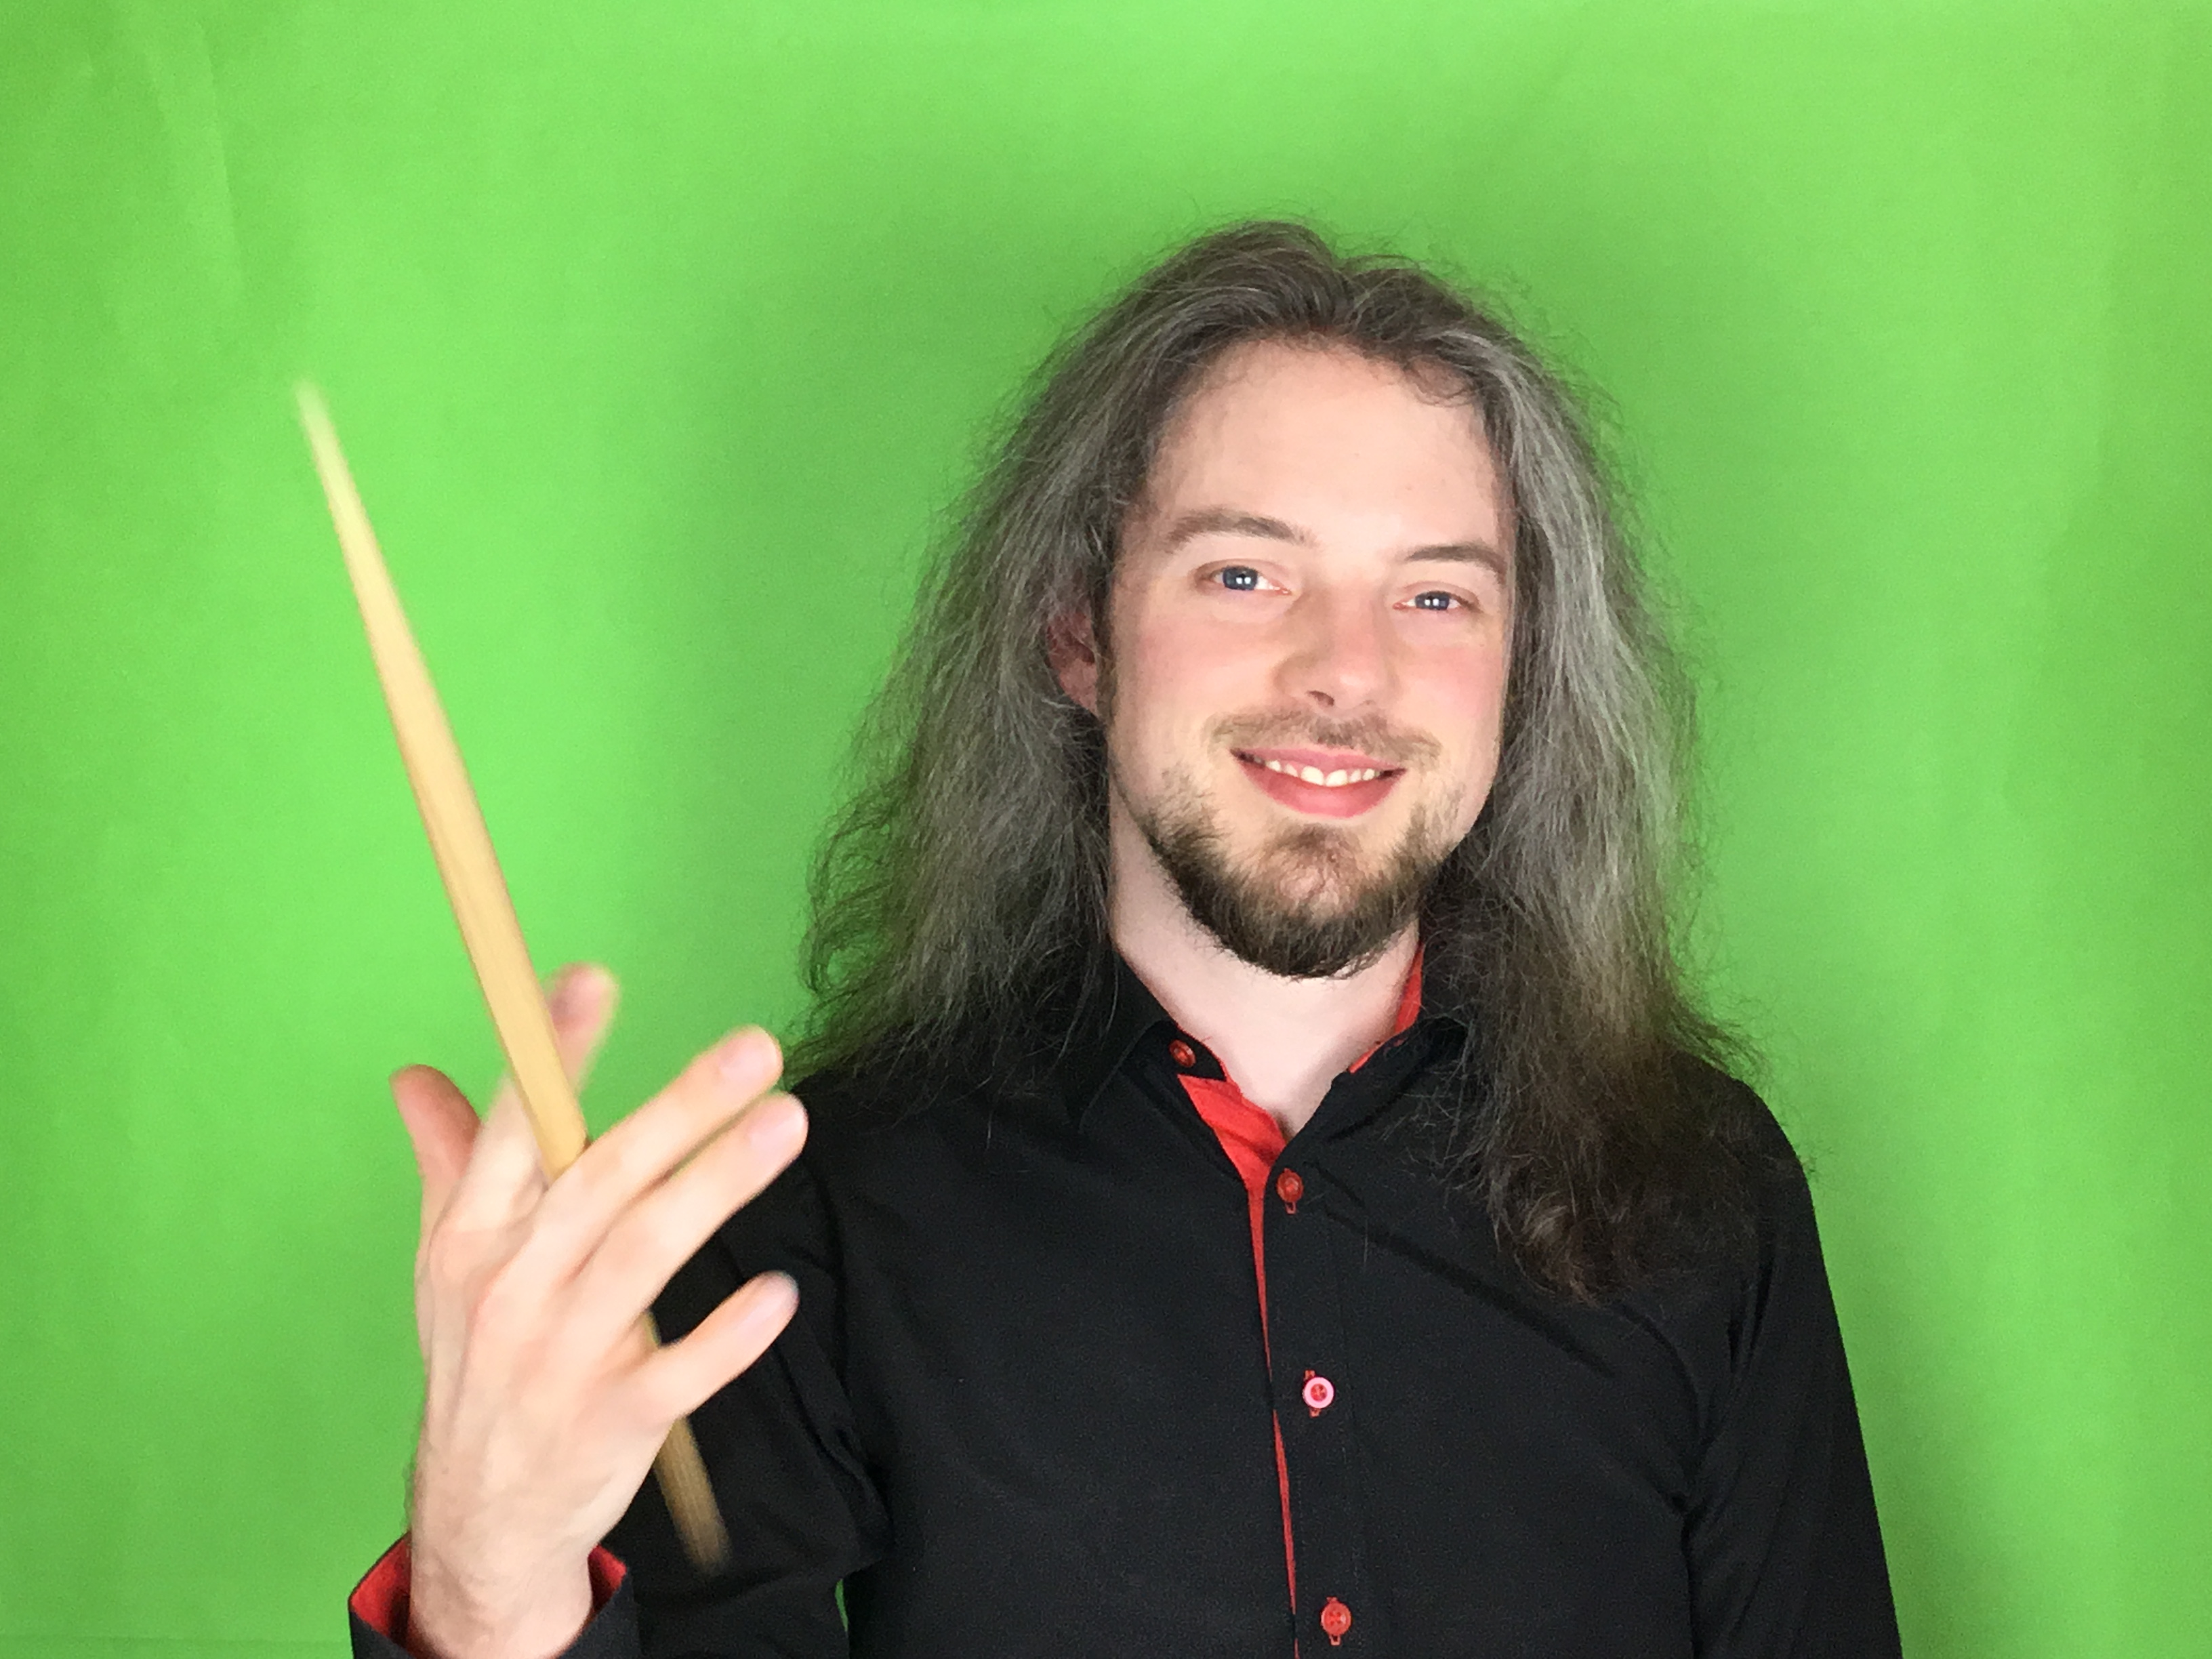 Green Screen YouTube Filming